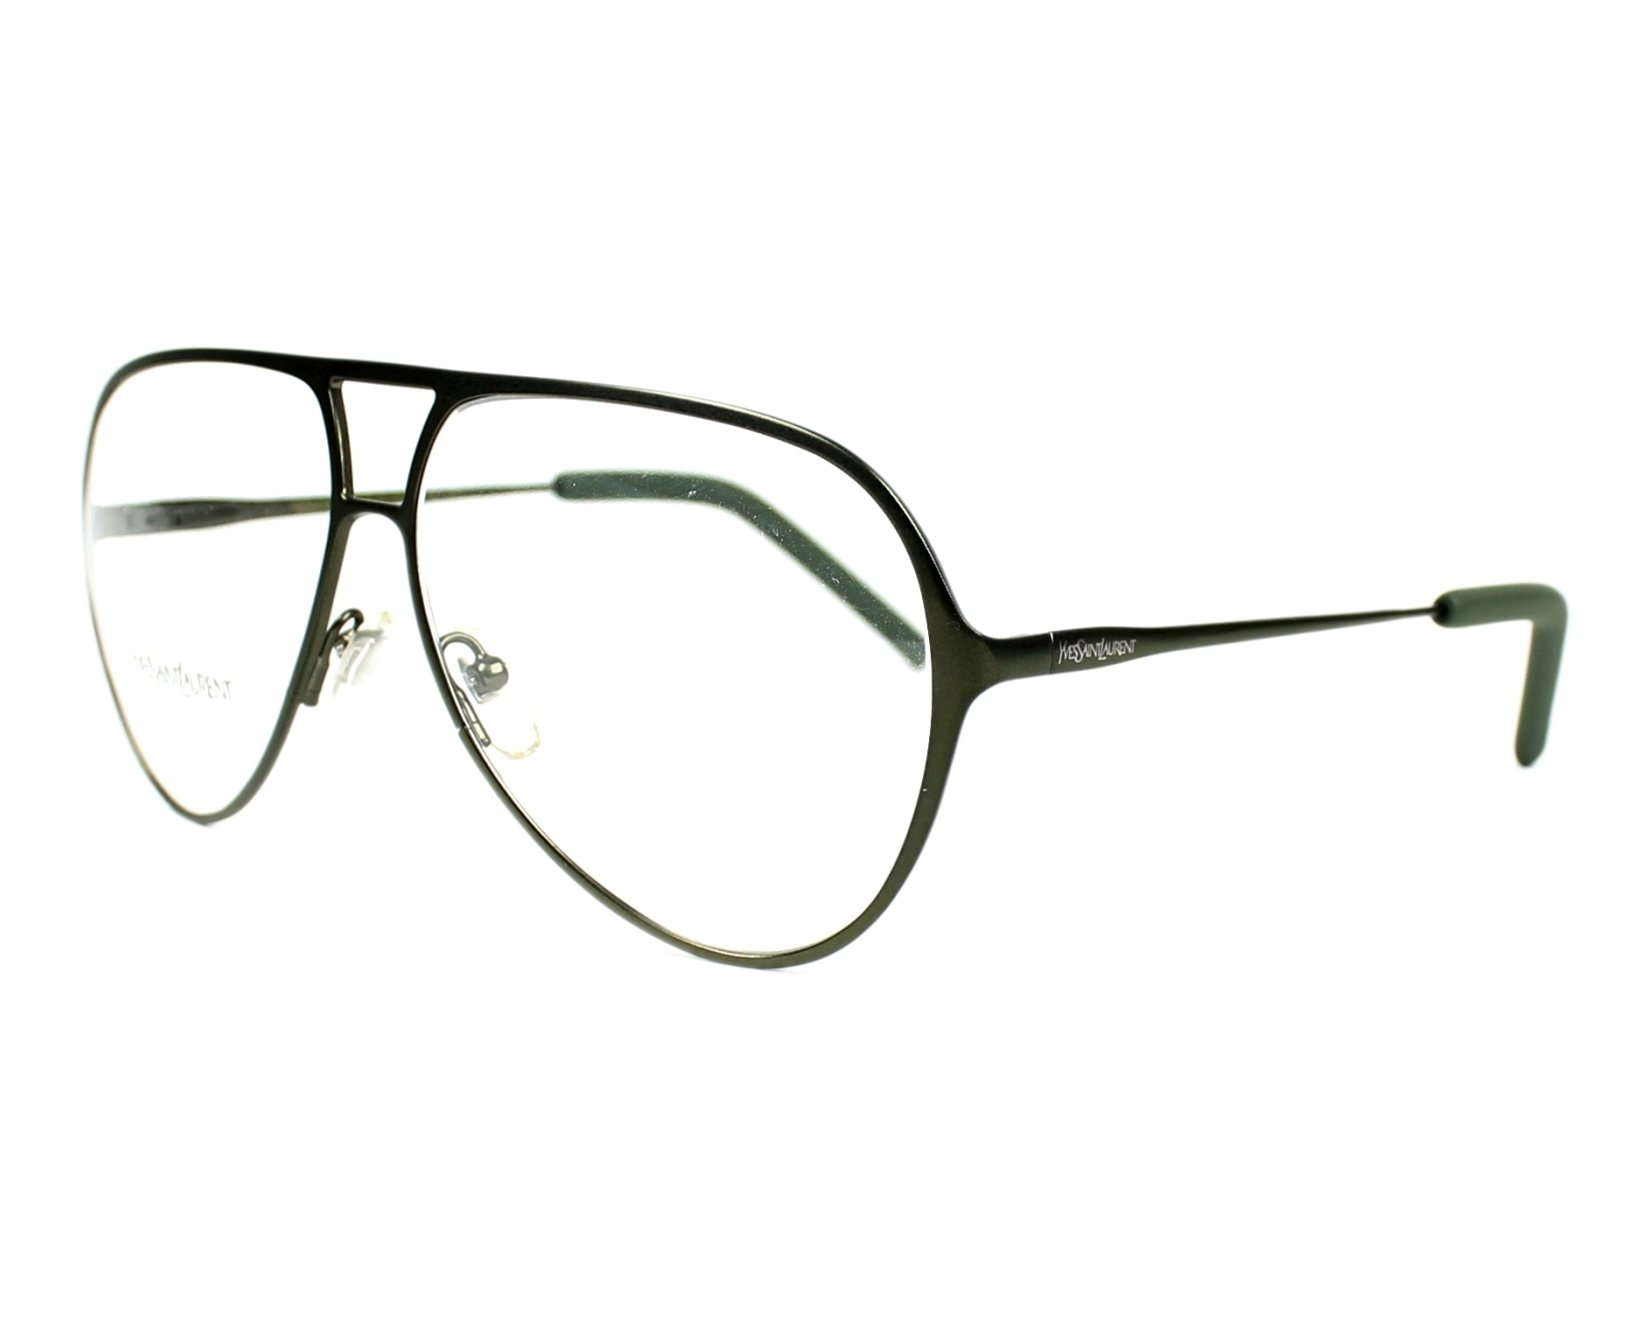 yves saint laurent eyeglasses ysl 2325 09p green visionet. Black Bedroom Furniture Sets. Home Design Ideas